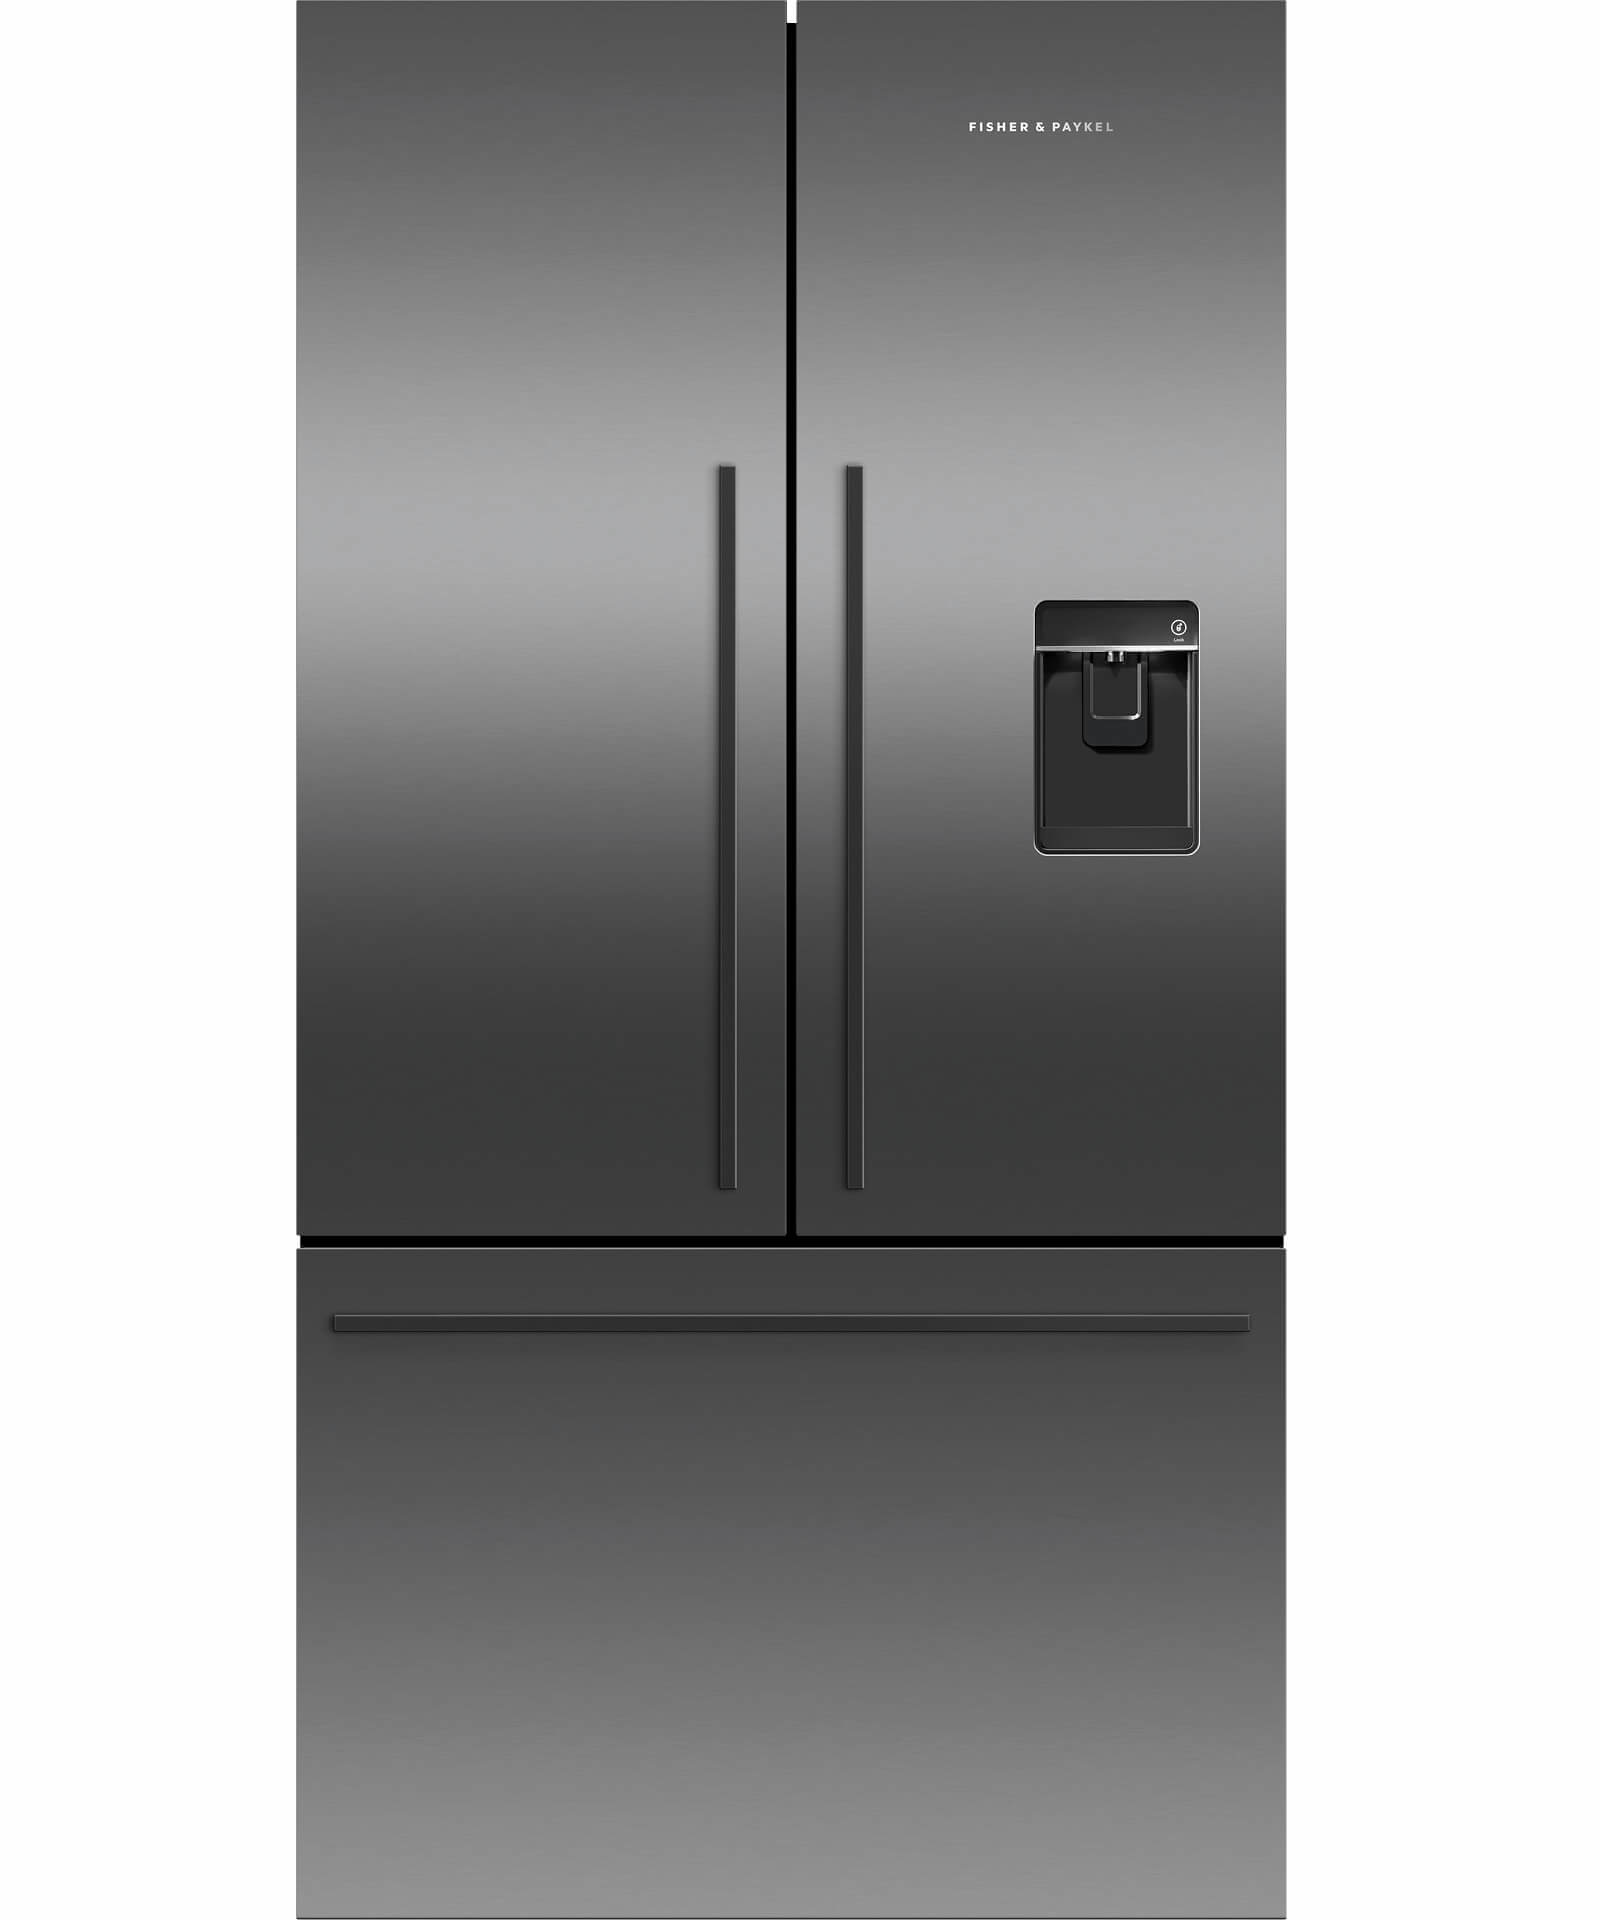 Factory Second Fisher and Paykel French Door Fridges 614lt French Door Refrigerator, black steel Finish RF610ADUB5FSB